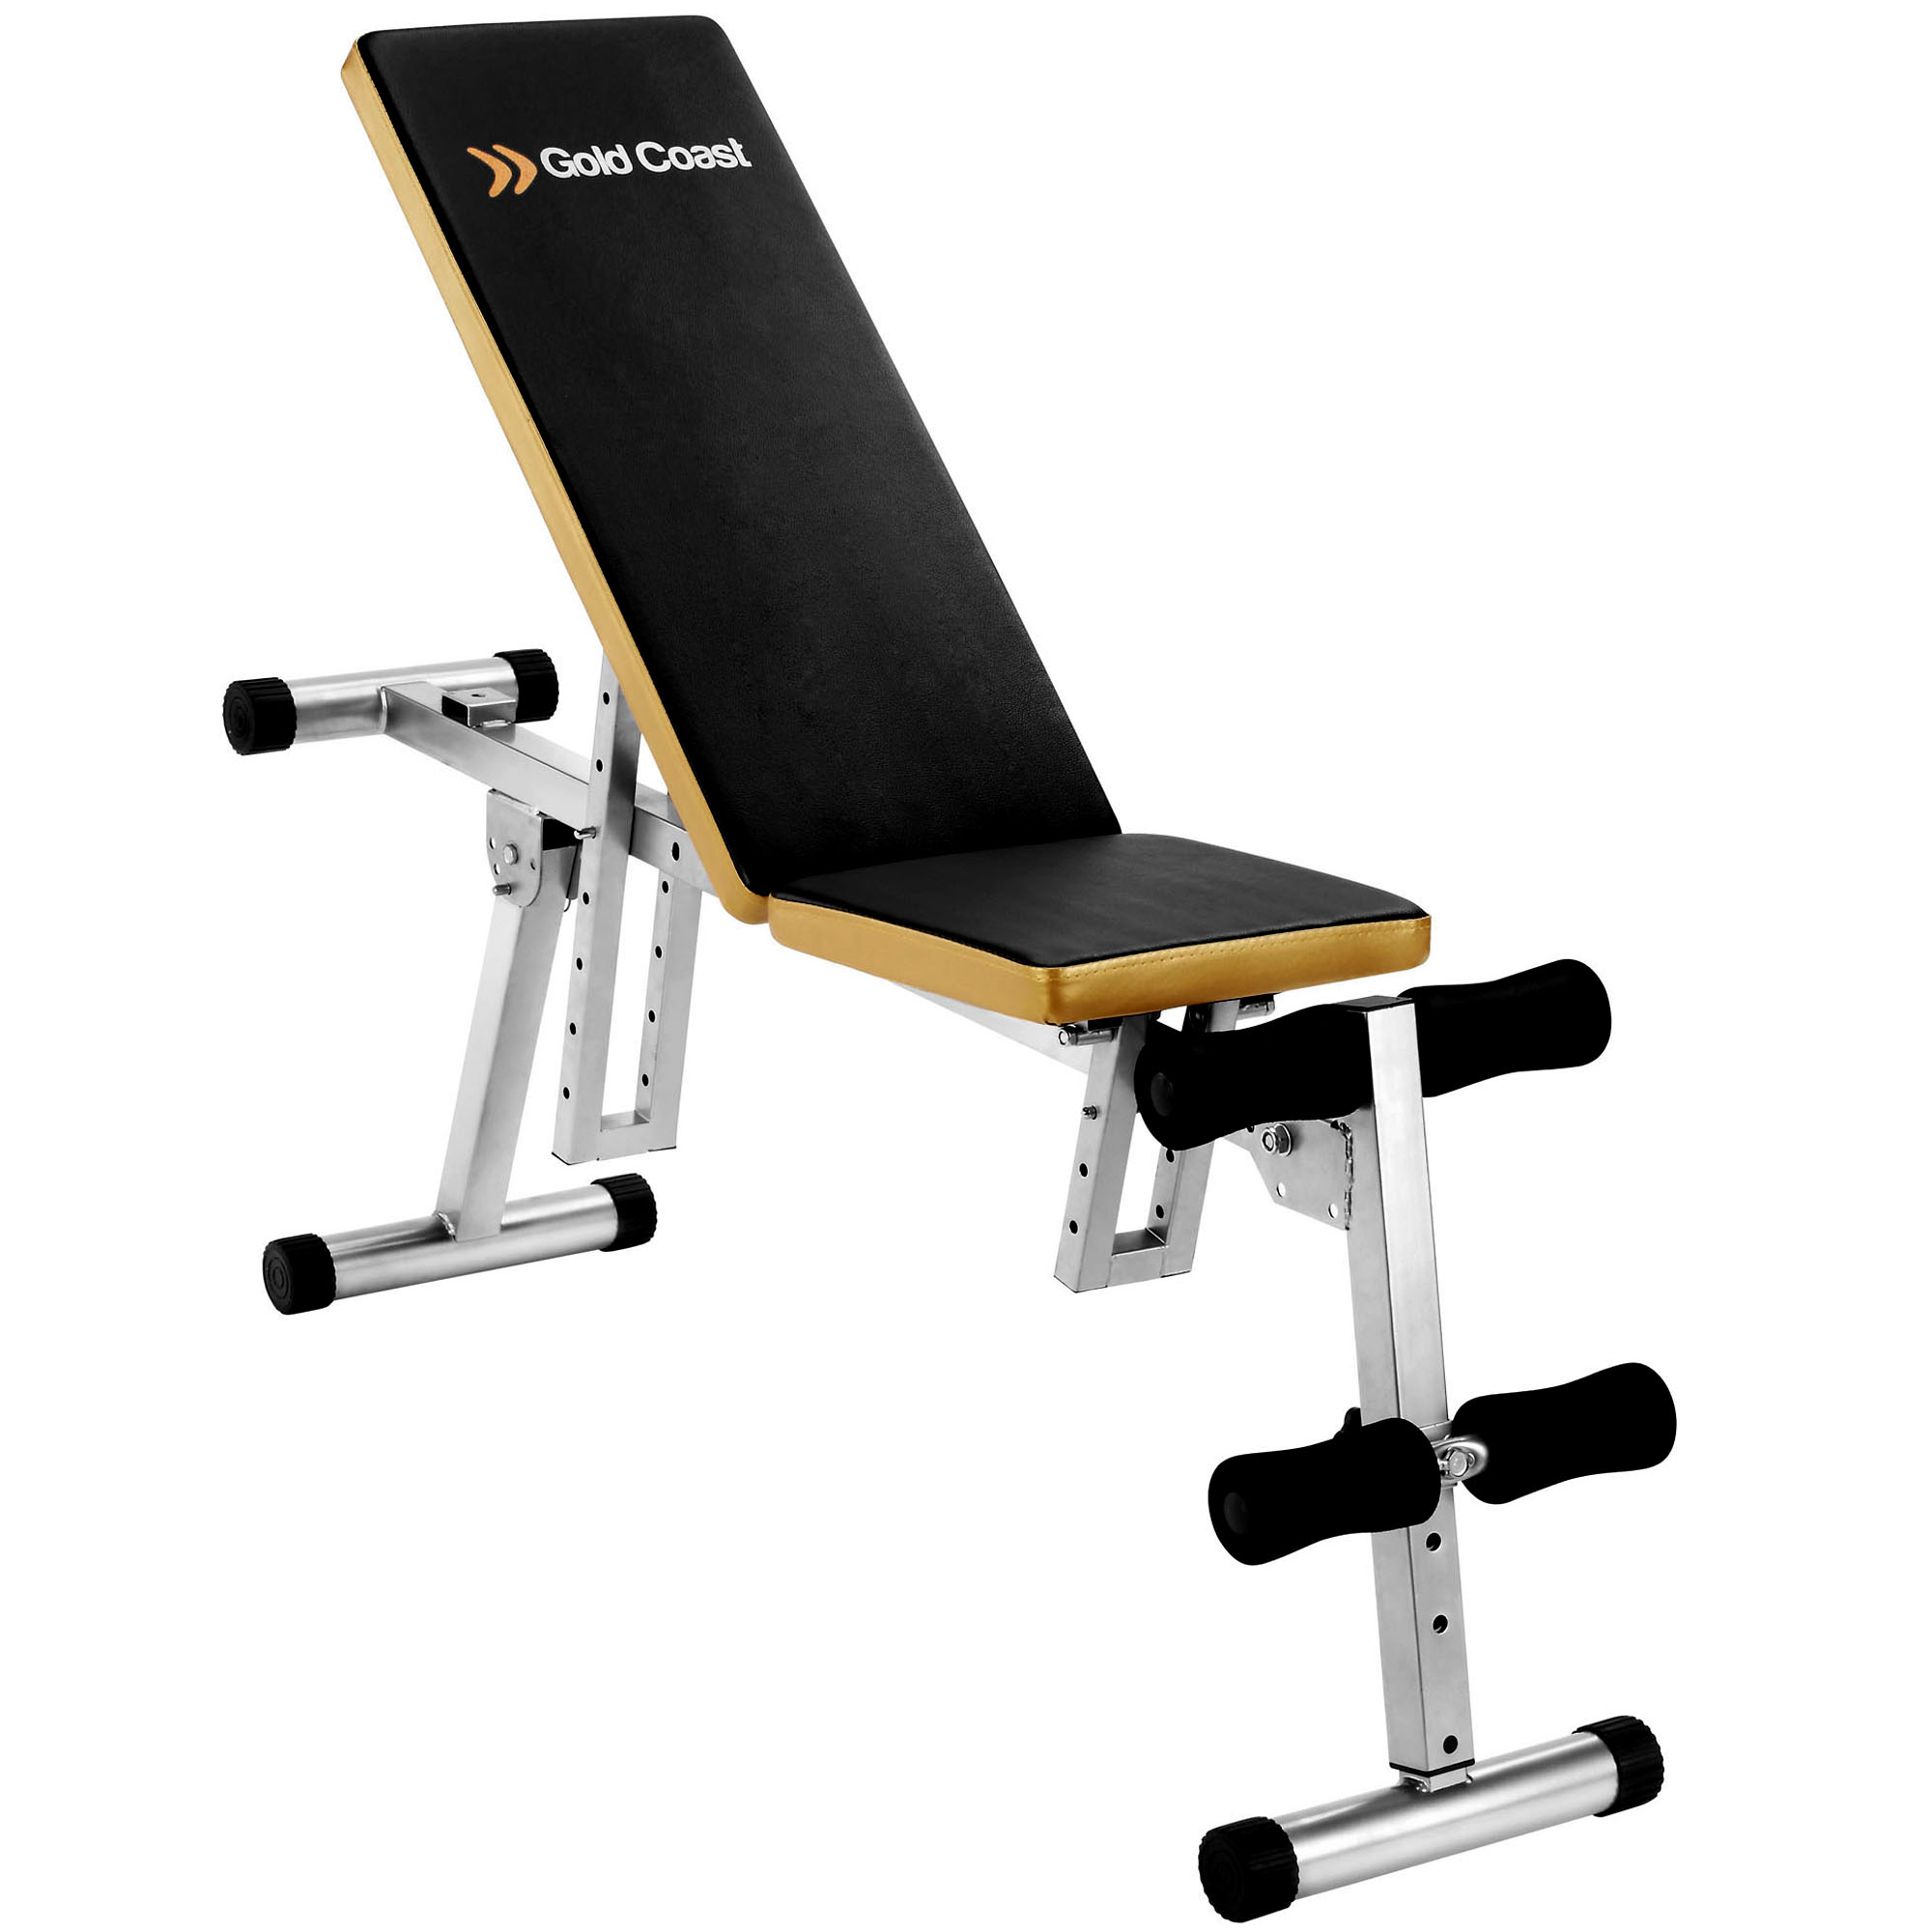 Powerblock Pro Bench 28 Images Powerblock Sportbench Weight Benches Fitness 4 Home